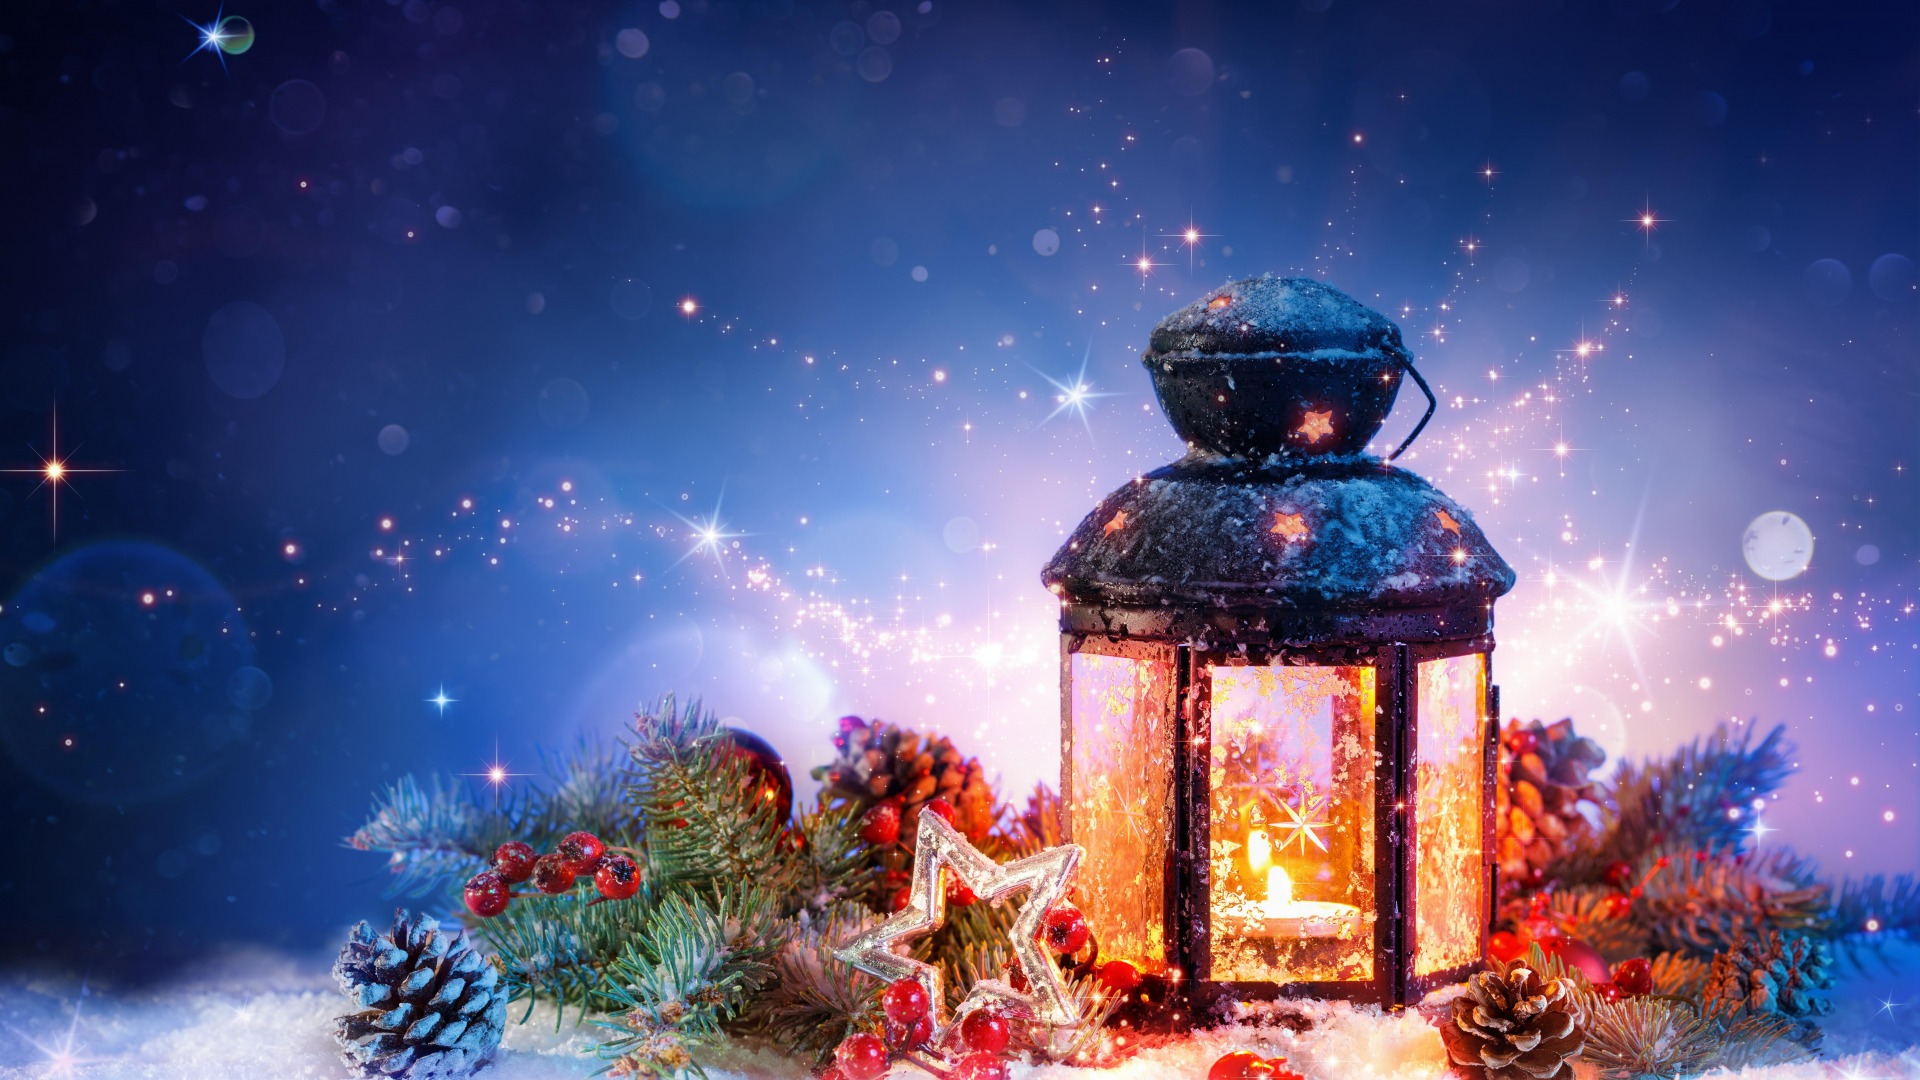 Download-snow-decoration-Christmas-lantern-New-year-tinsel-bumps-section-wallpaper-wp3404986